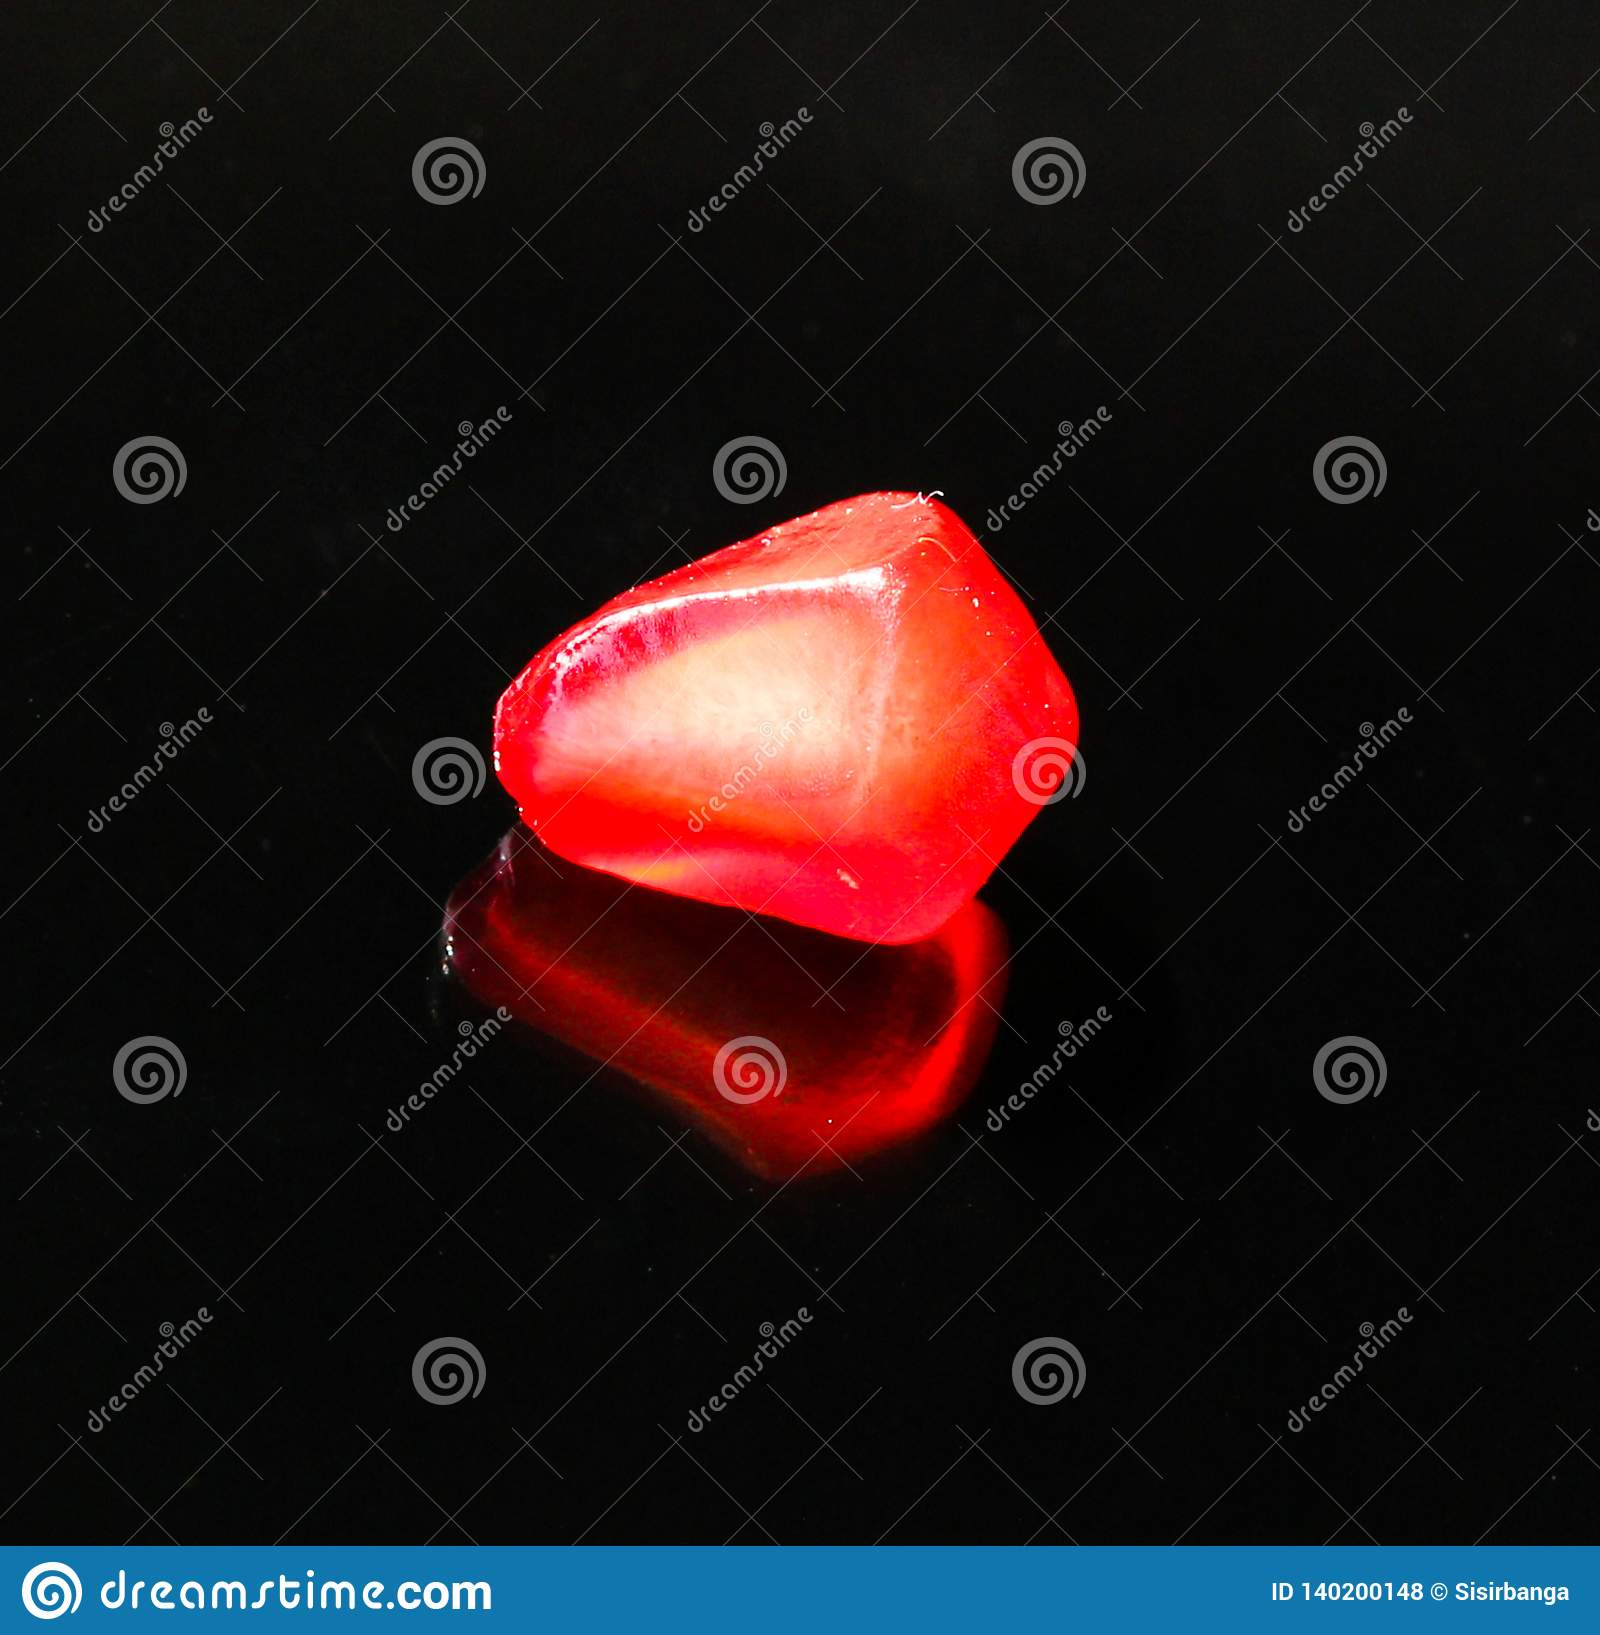 Pomegranate- Single seed with reflection